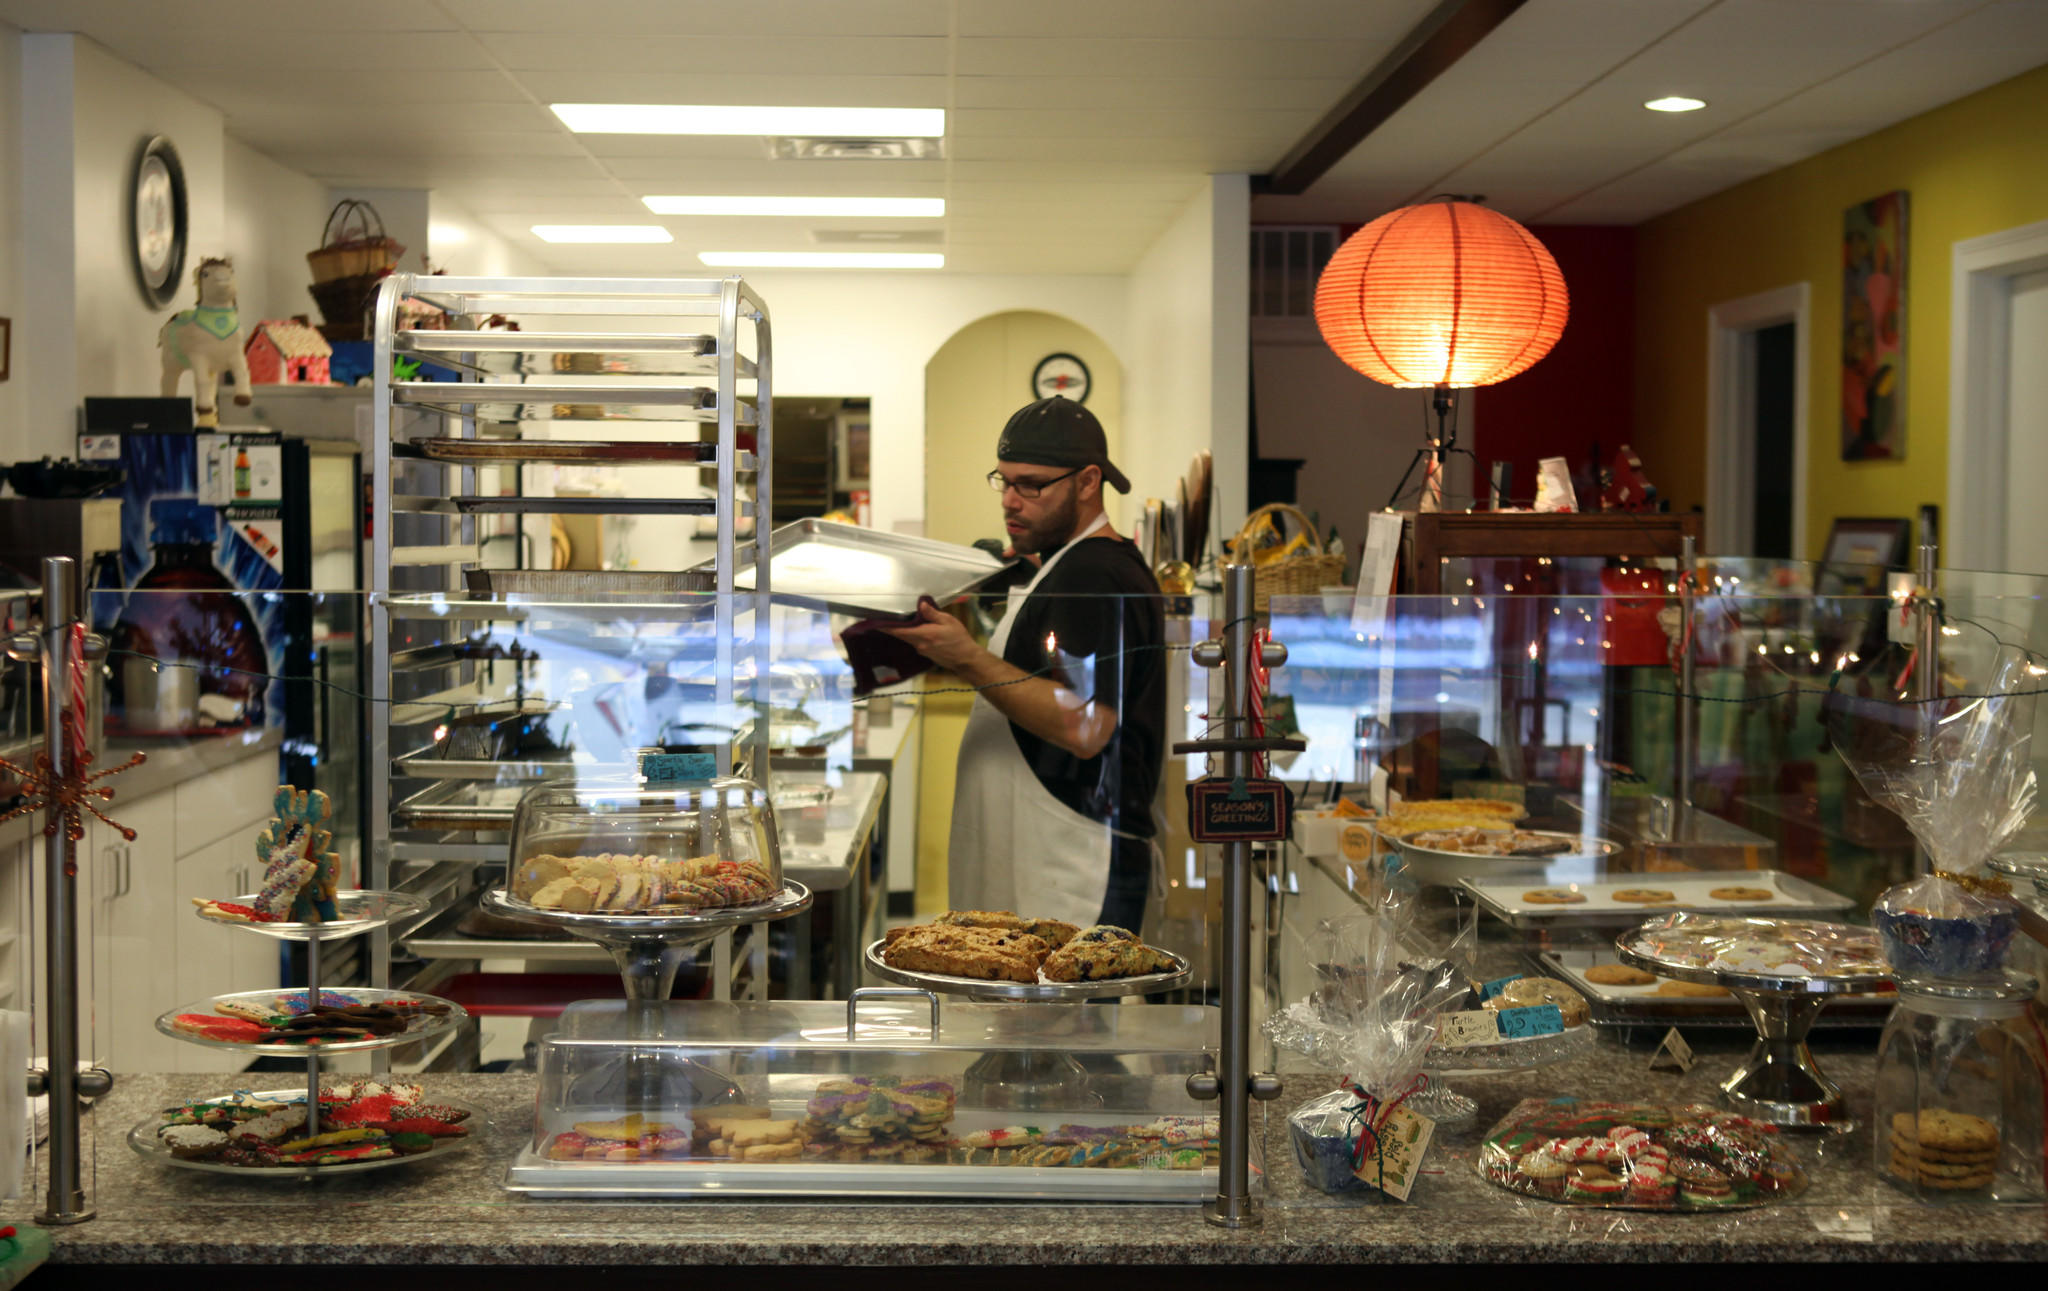 Sweety Pies is one bakery taking part in Pi Day celebrations.